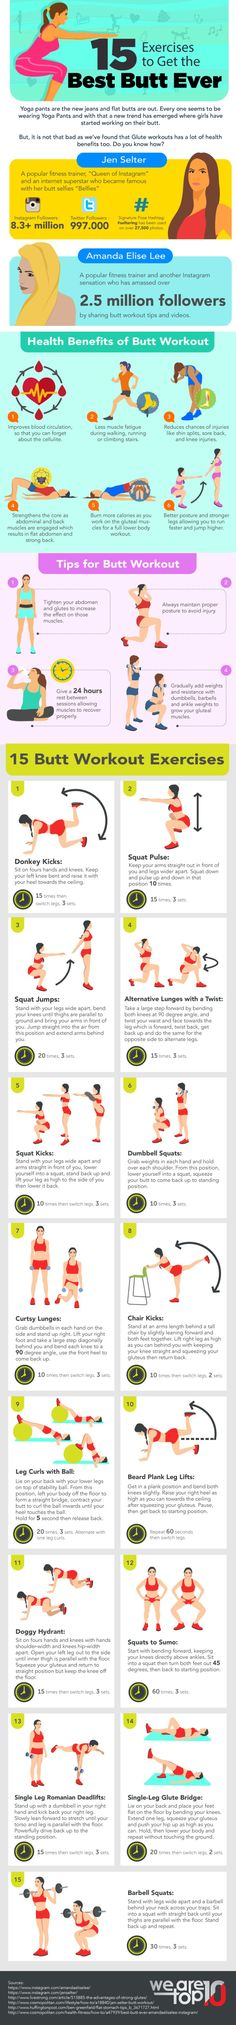 15 Exercises to Get the Best Butt Ever #Infographic